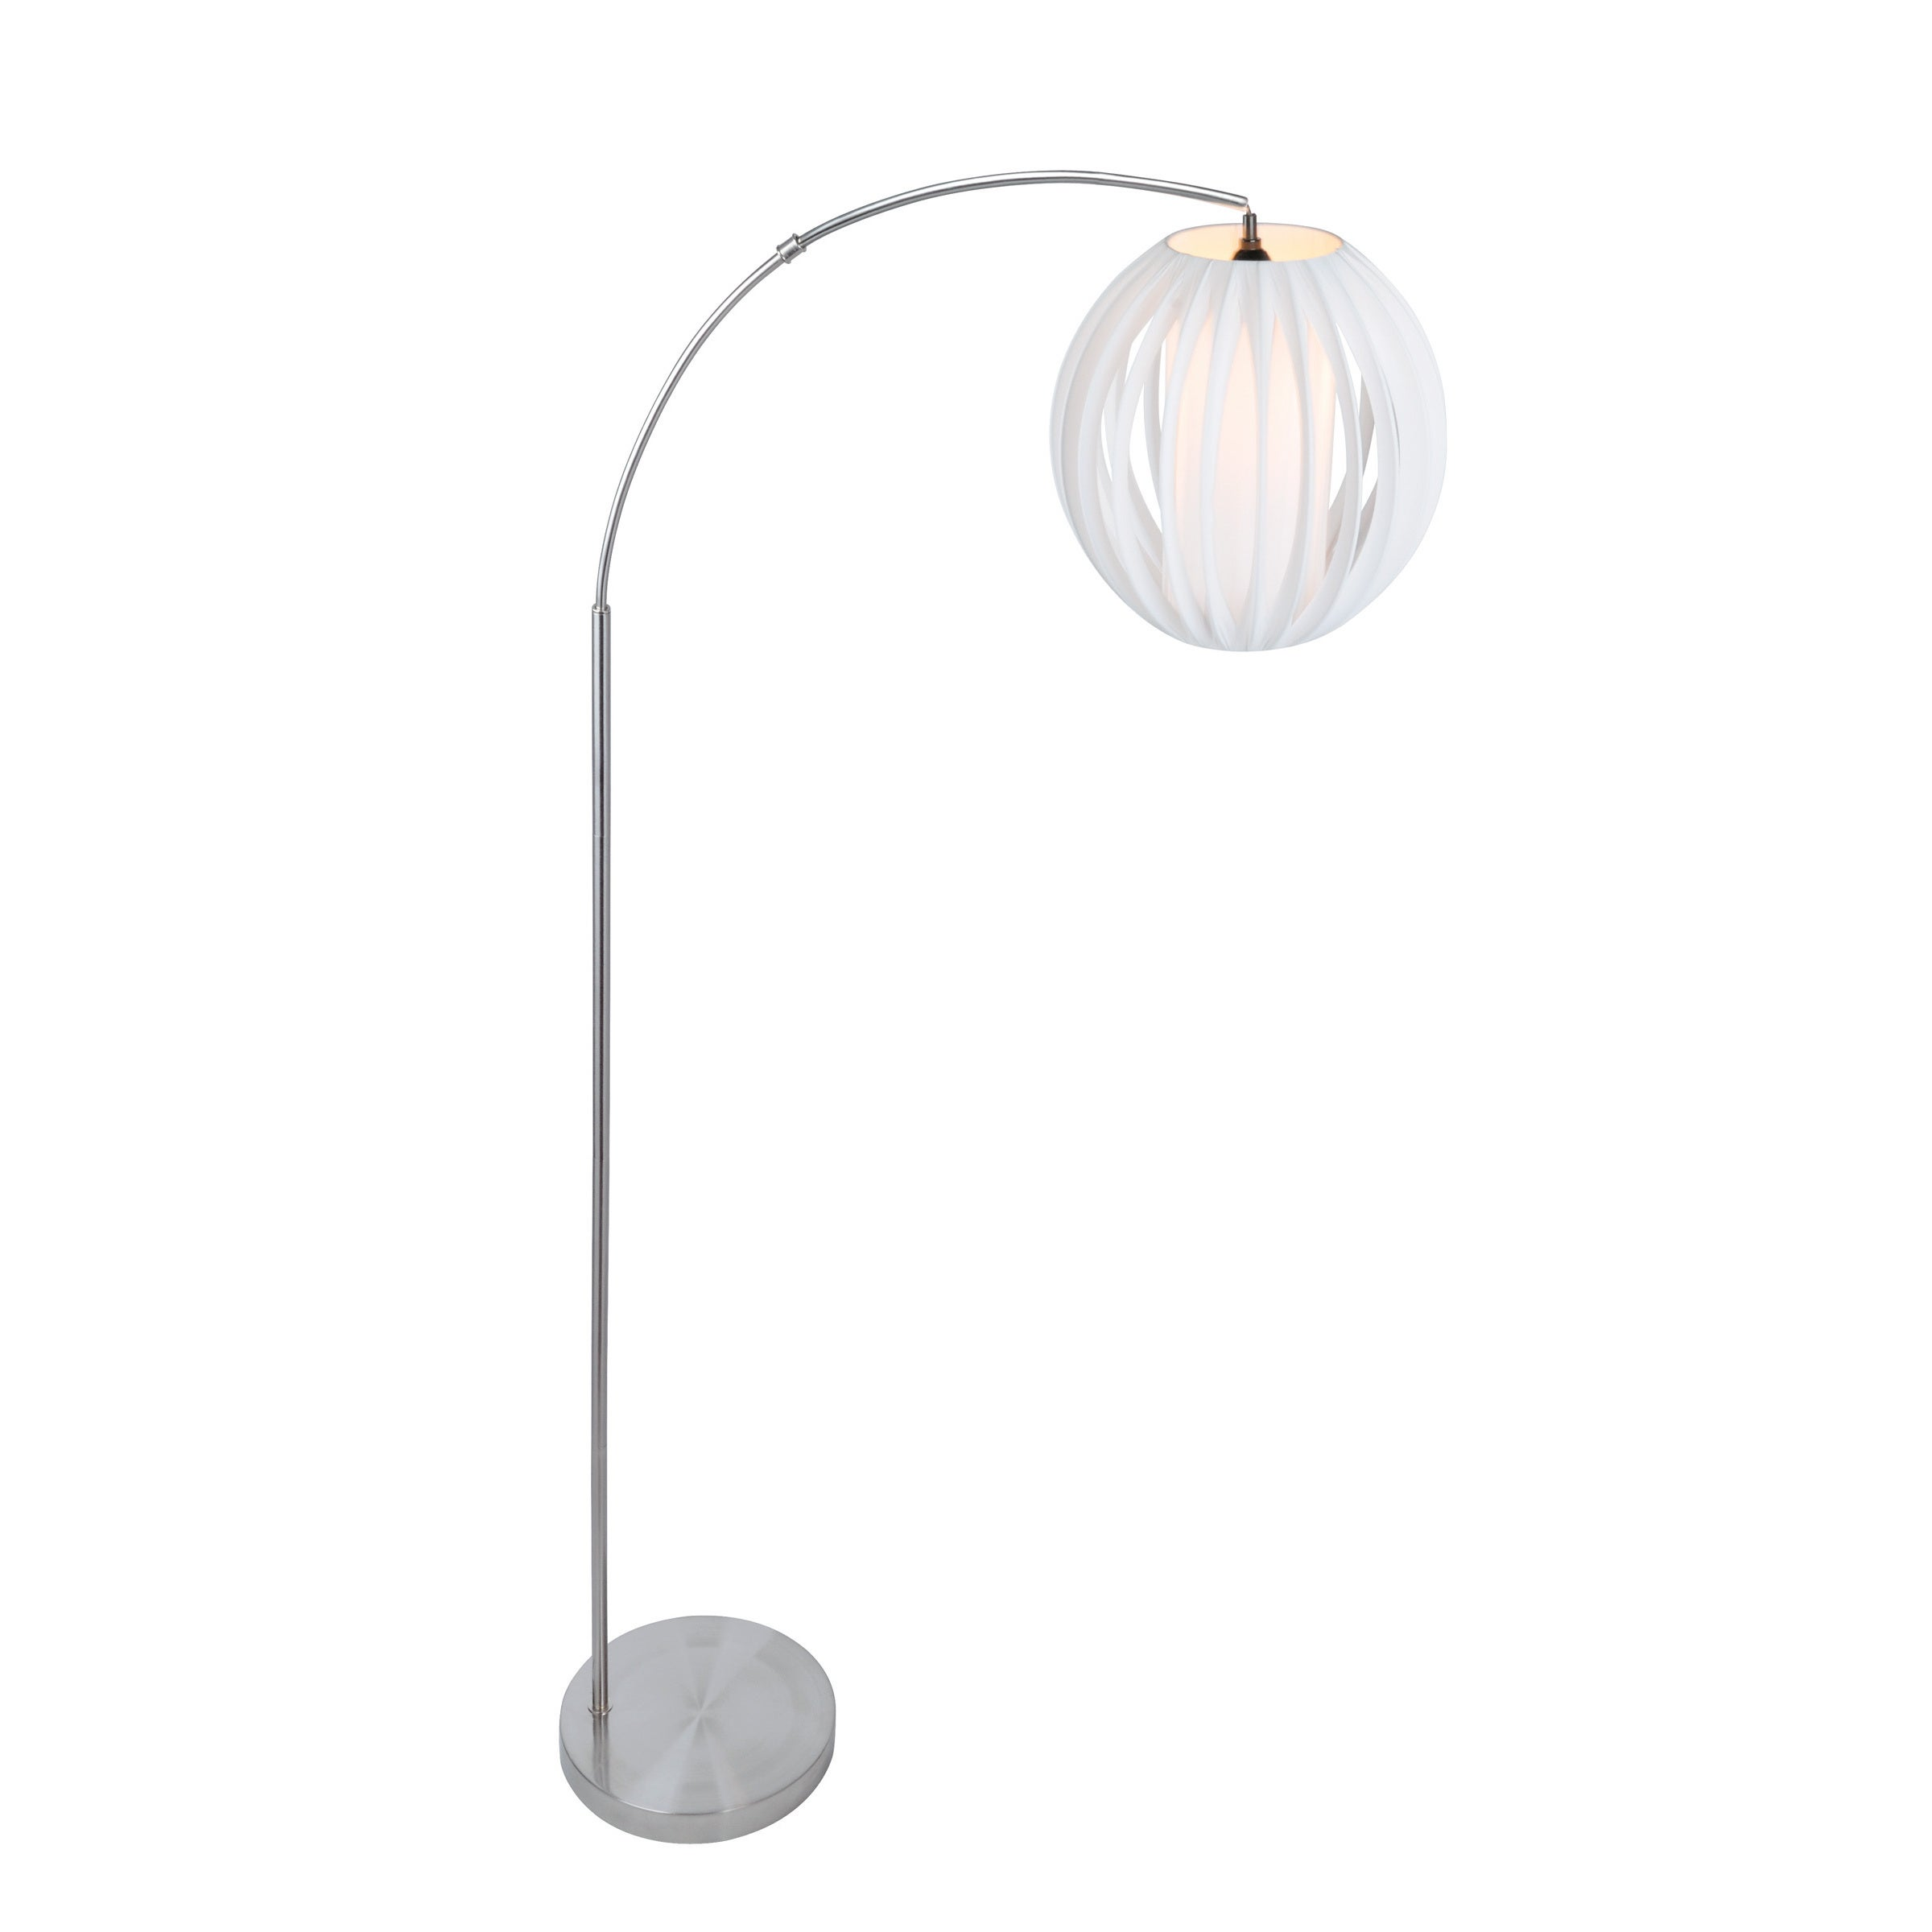 Lite Source 1 Light Deion Floor Arch Lamp On Free Shipping Today 13777444